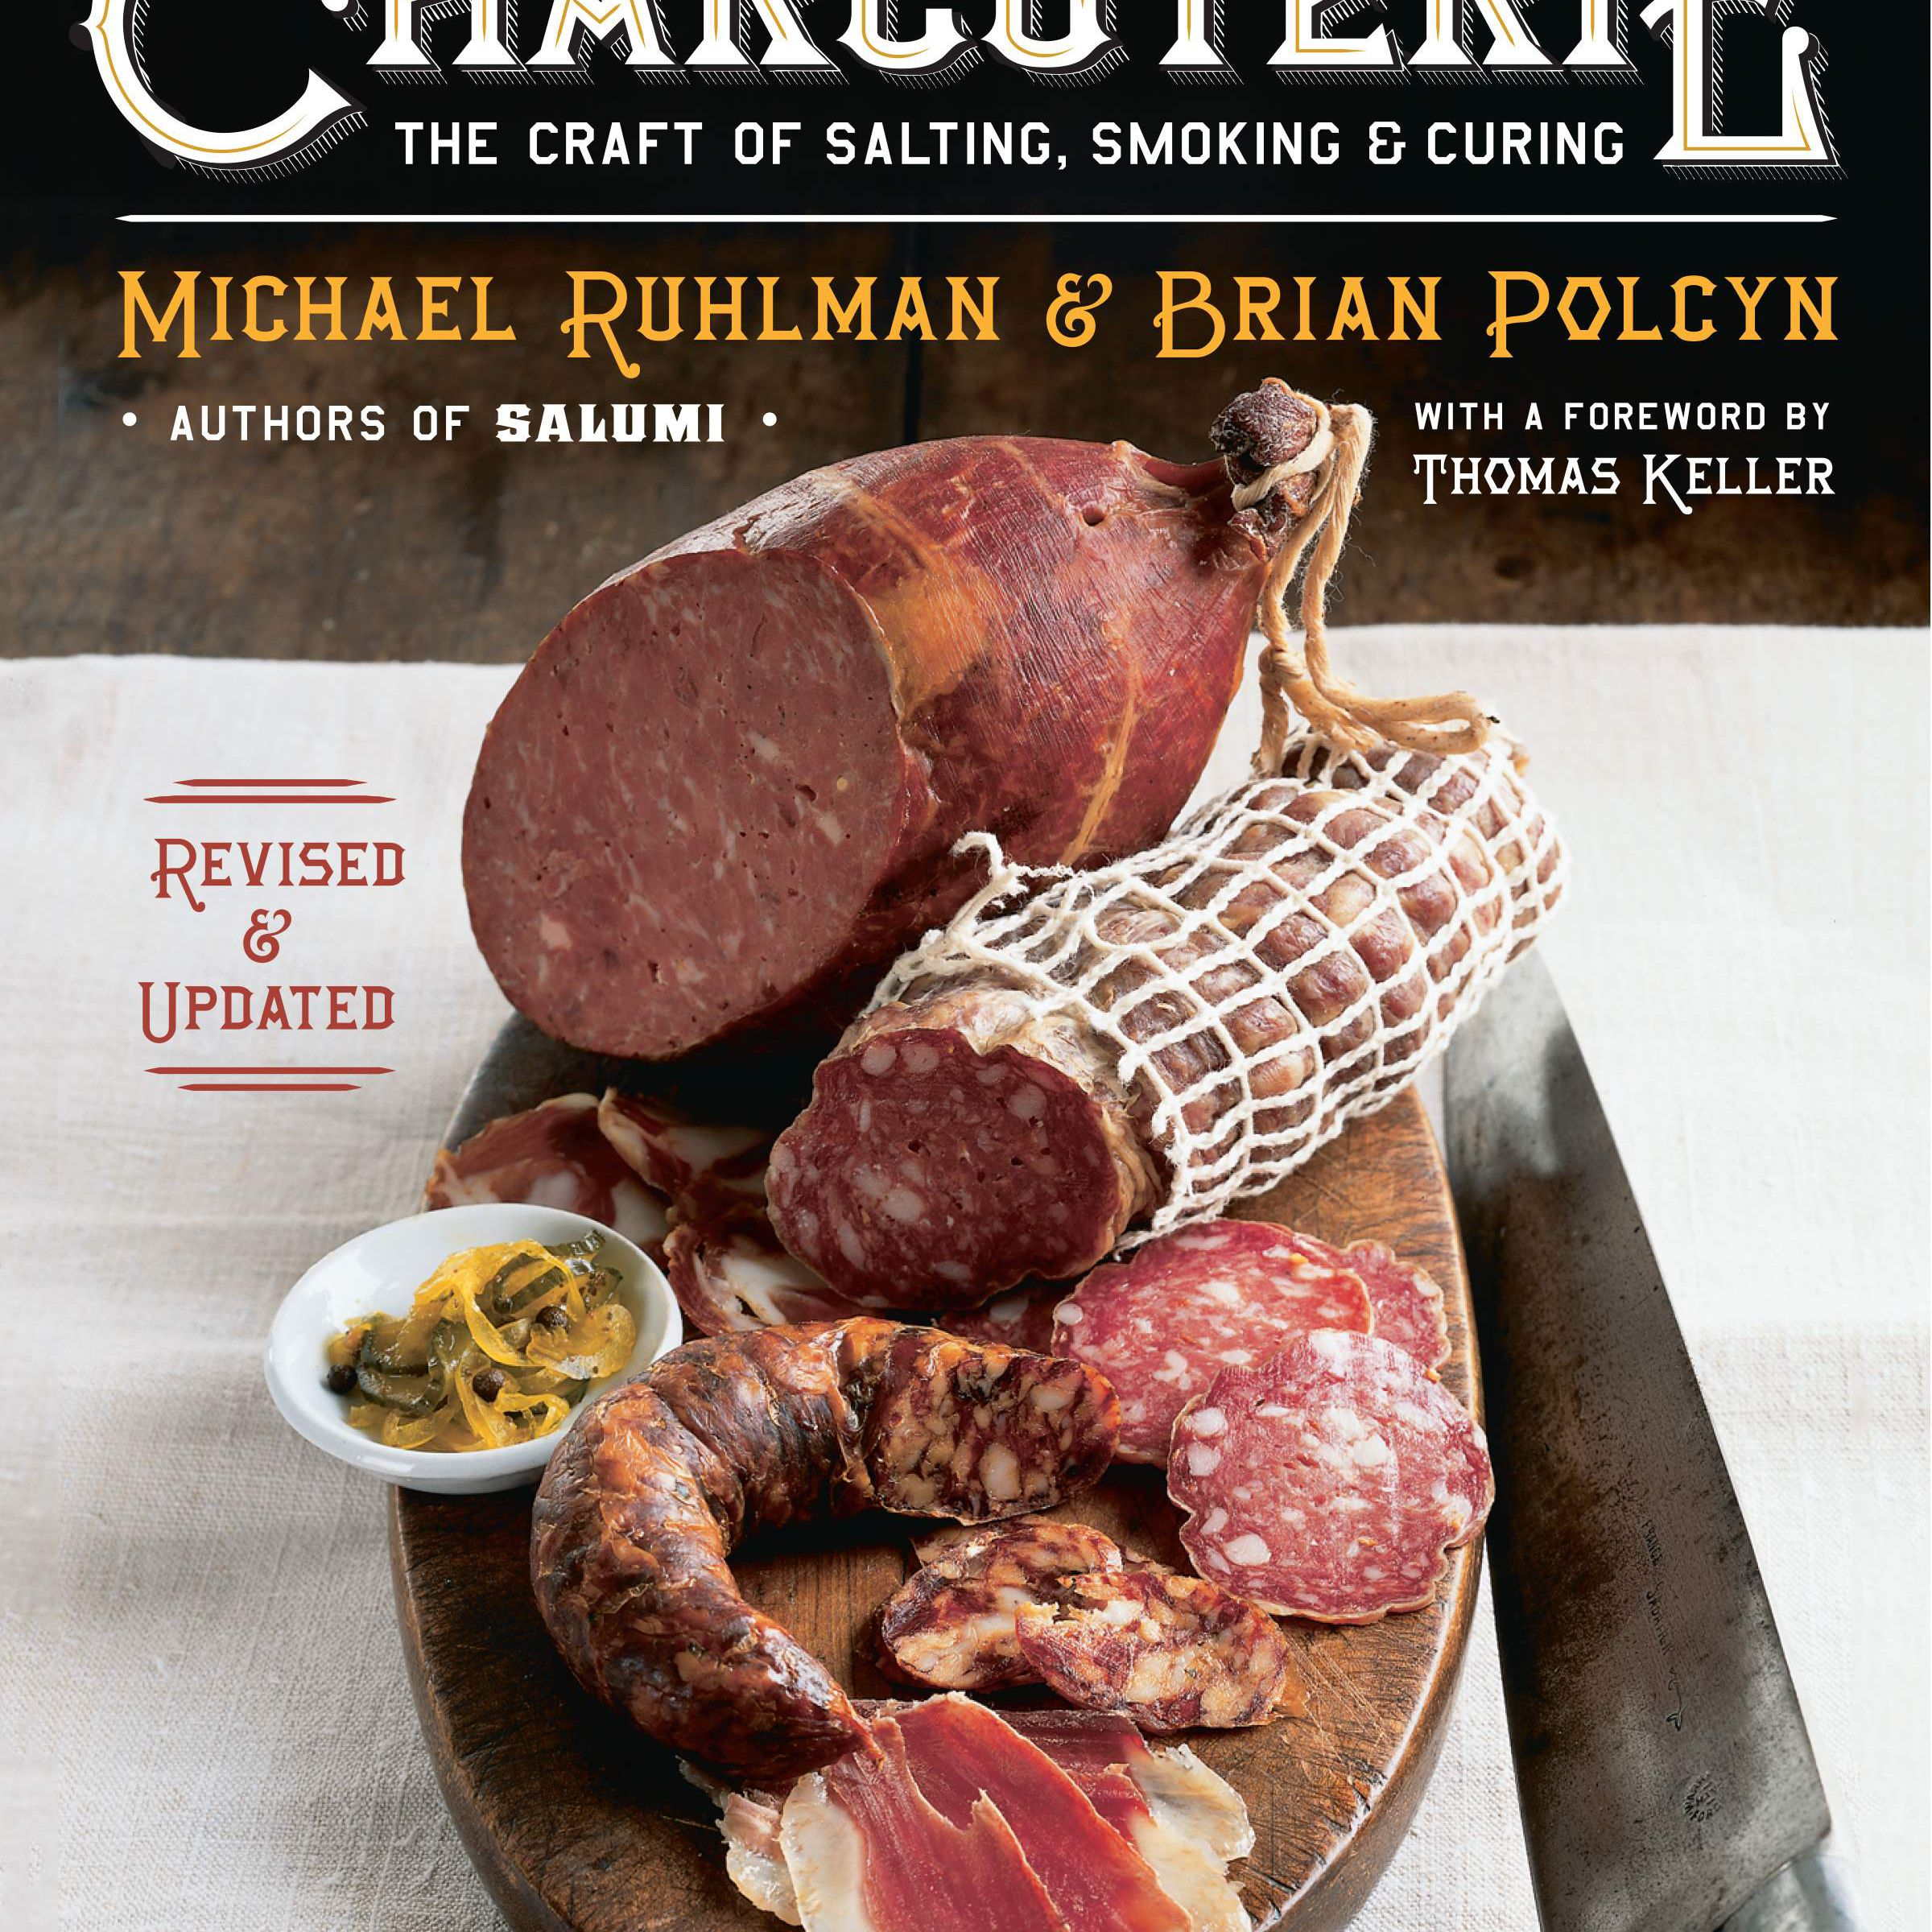 The bible of charcuterie